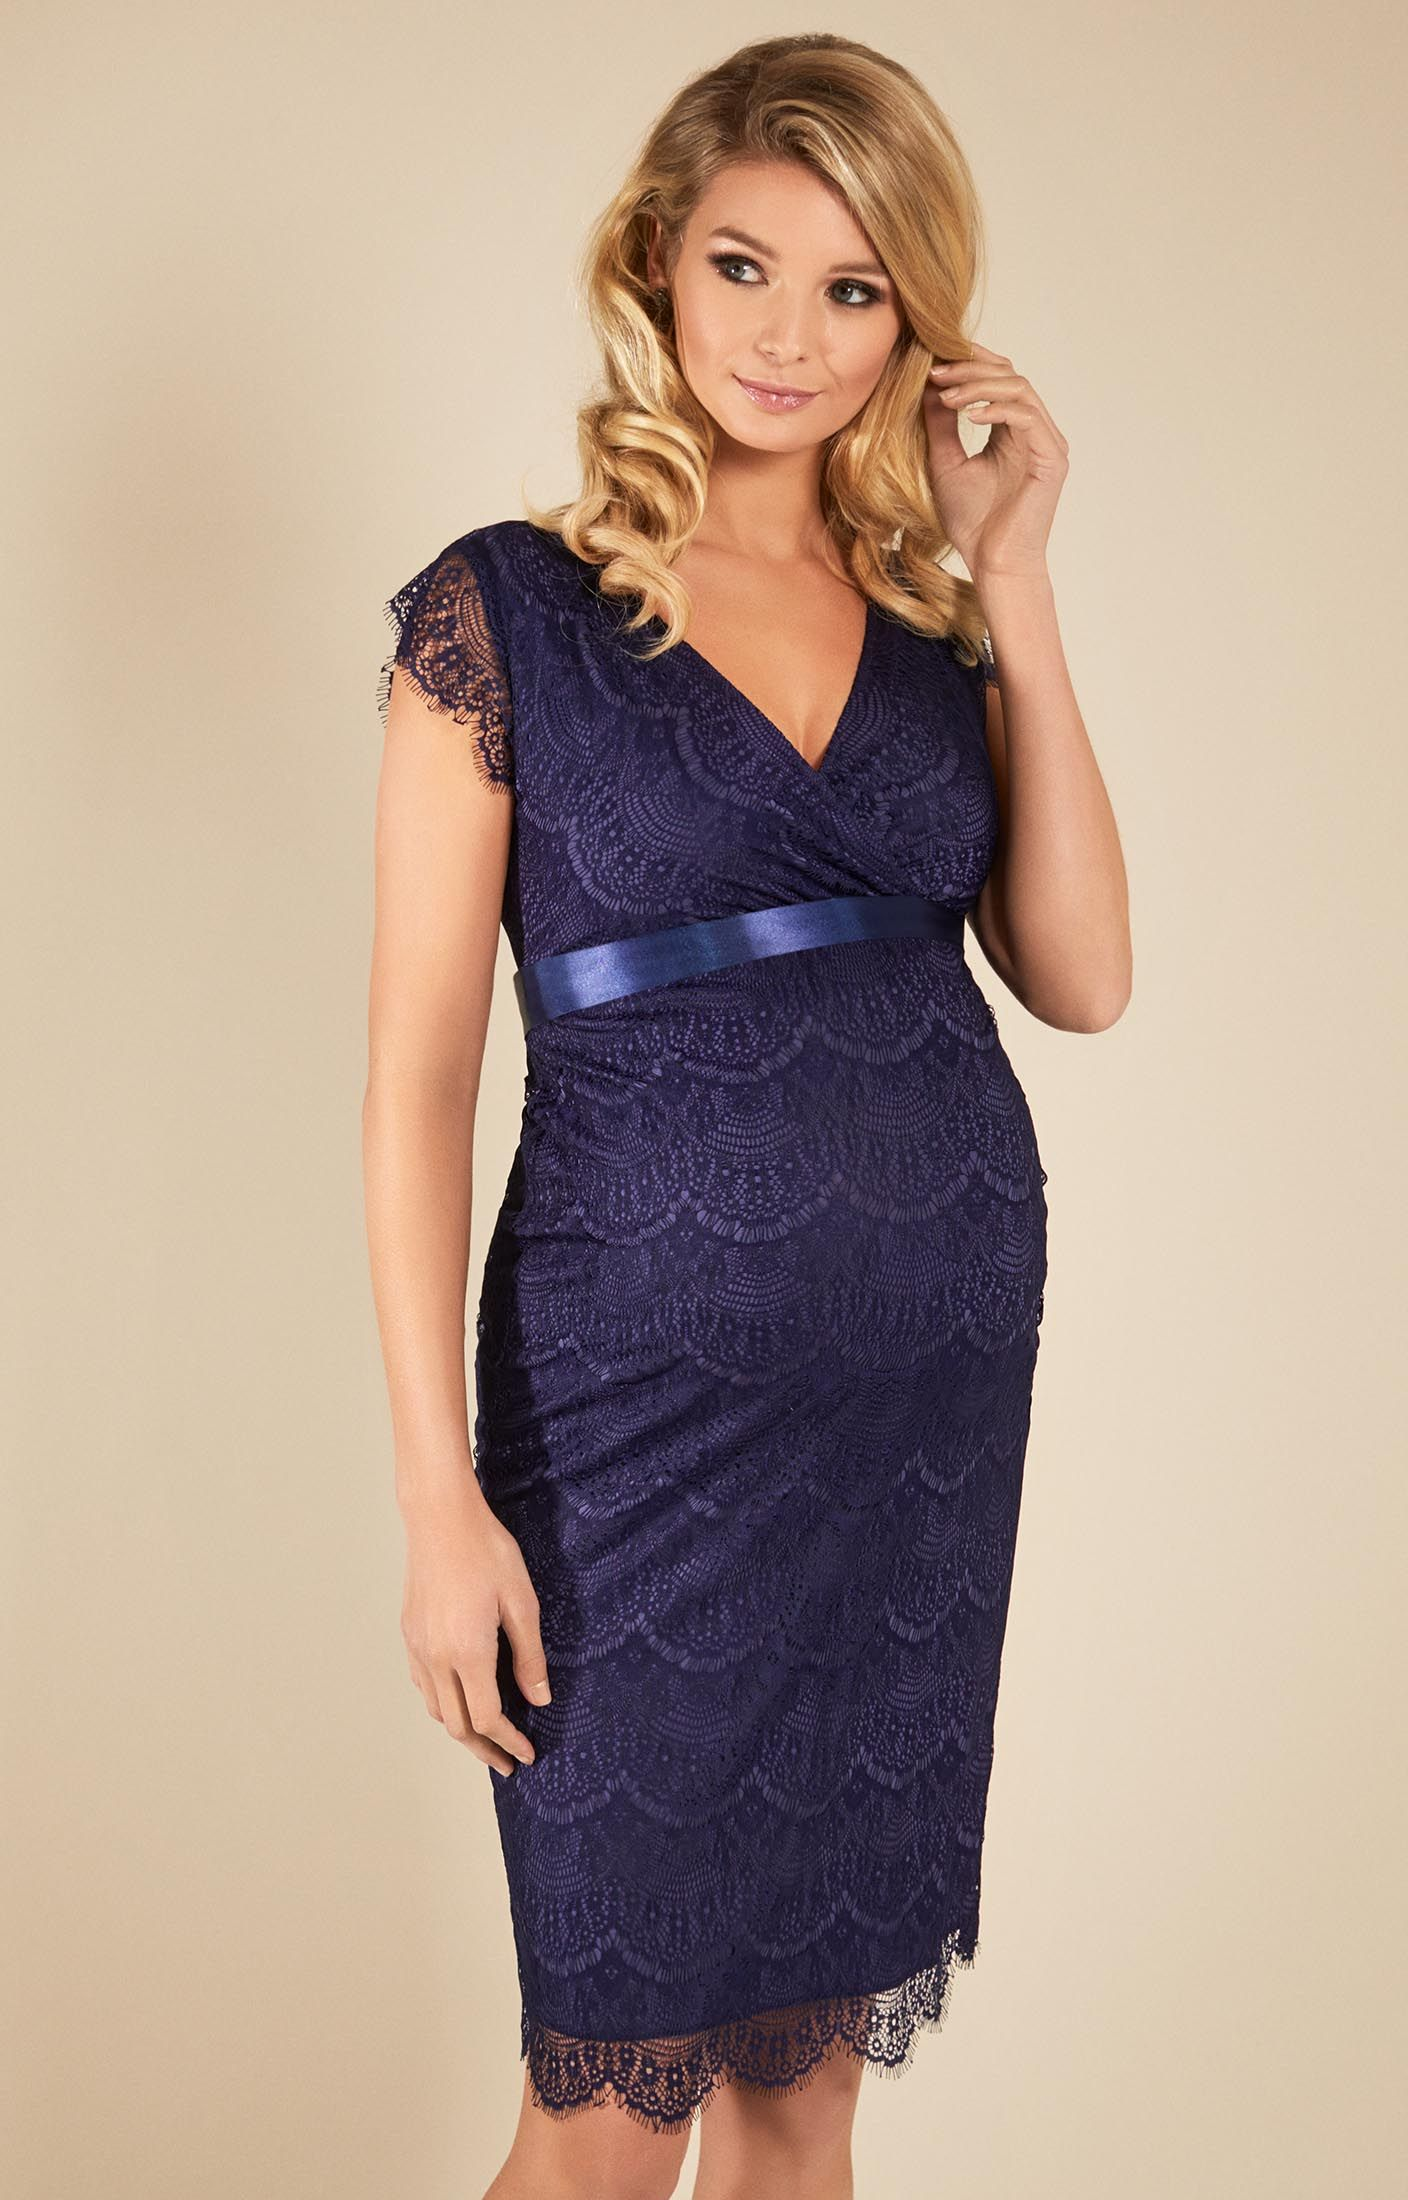 280452fca73e2 Sophisticated, stylish and sexy in equal measure, our vintage inspired  maternity dress is something of an icon, now in a new blue hue.